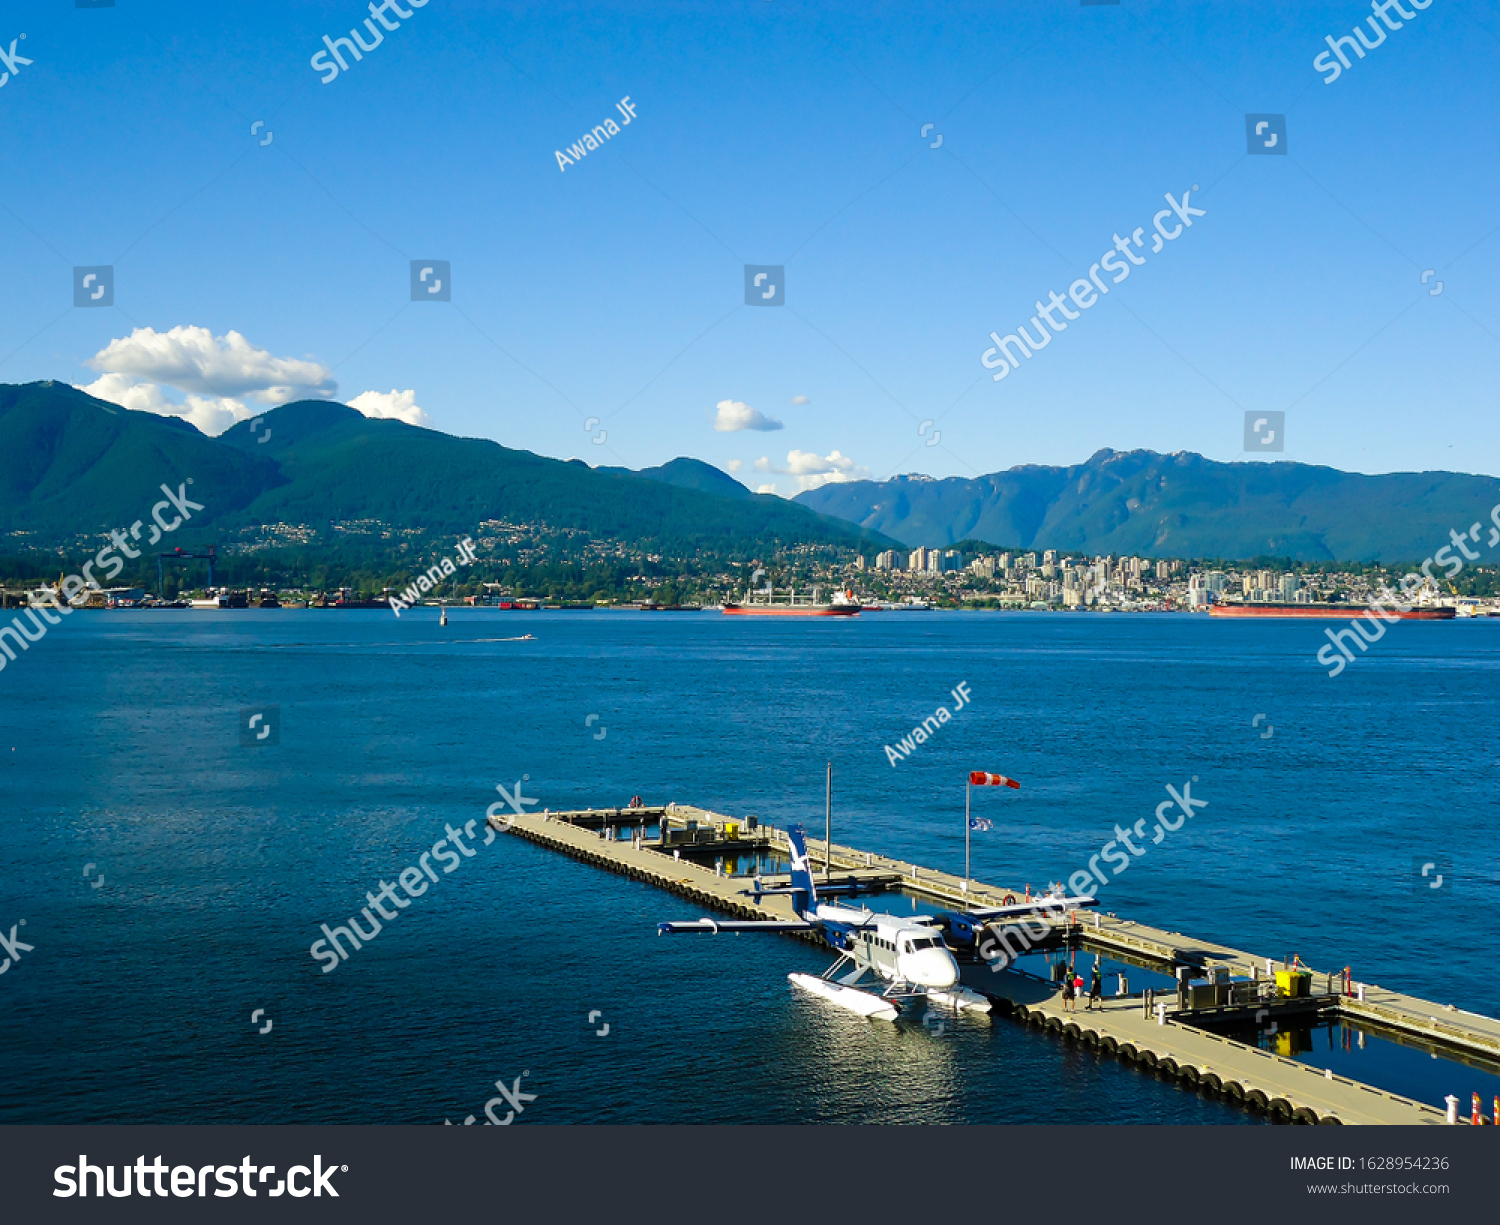 stock-photo-vancouver-canada-july-view-o